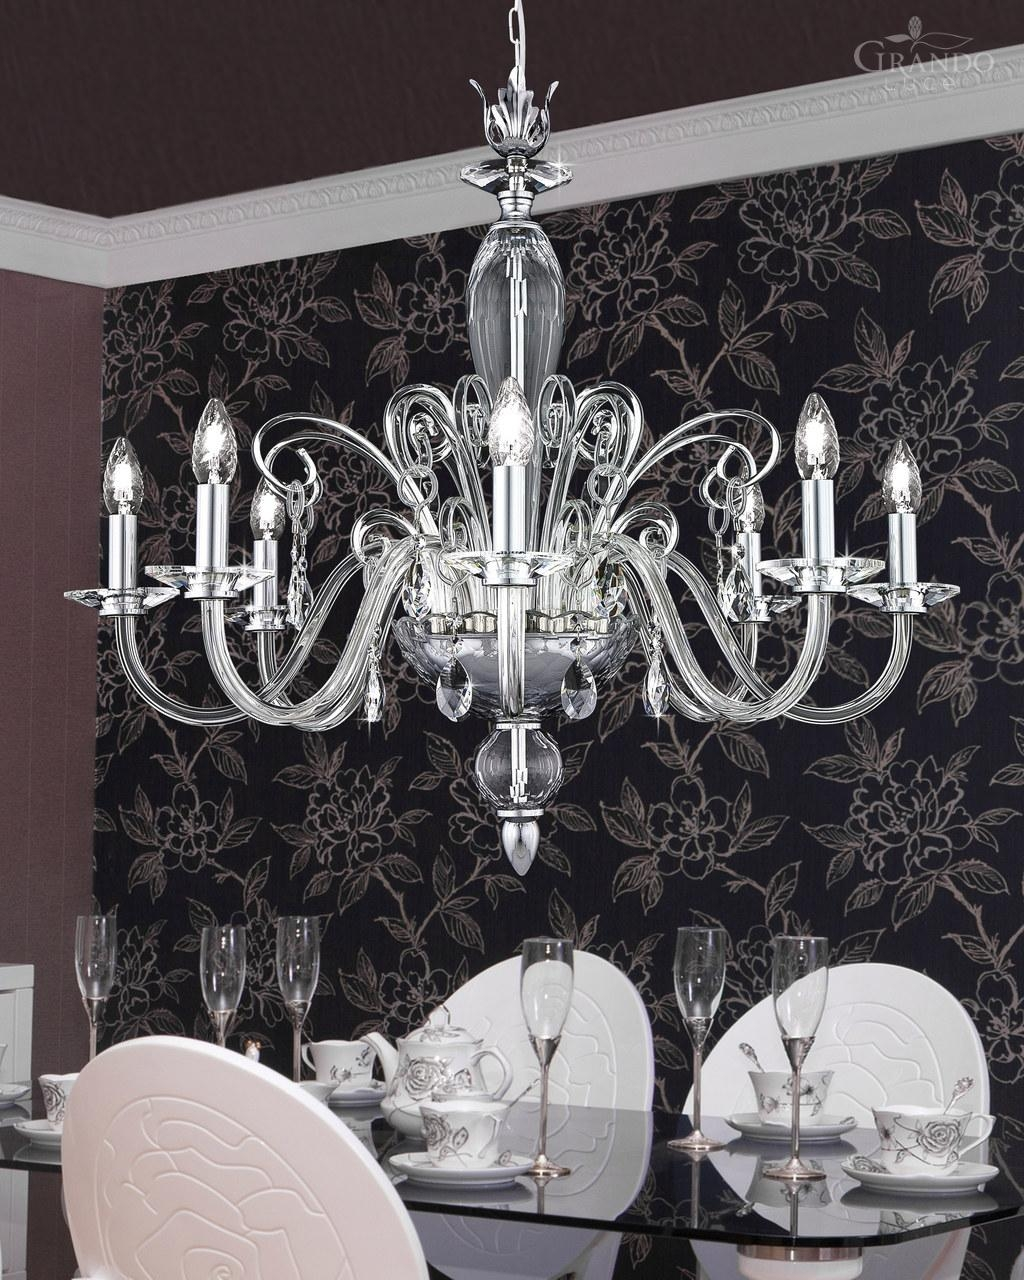 1208 Ch Chrome Crystal Chandelier With Swarovski Elements For Chrome And Crystal Chandeliers (Image 3 of 25)